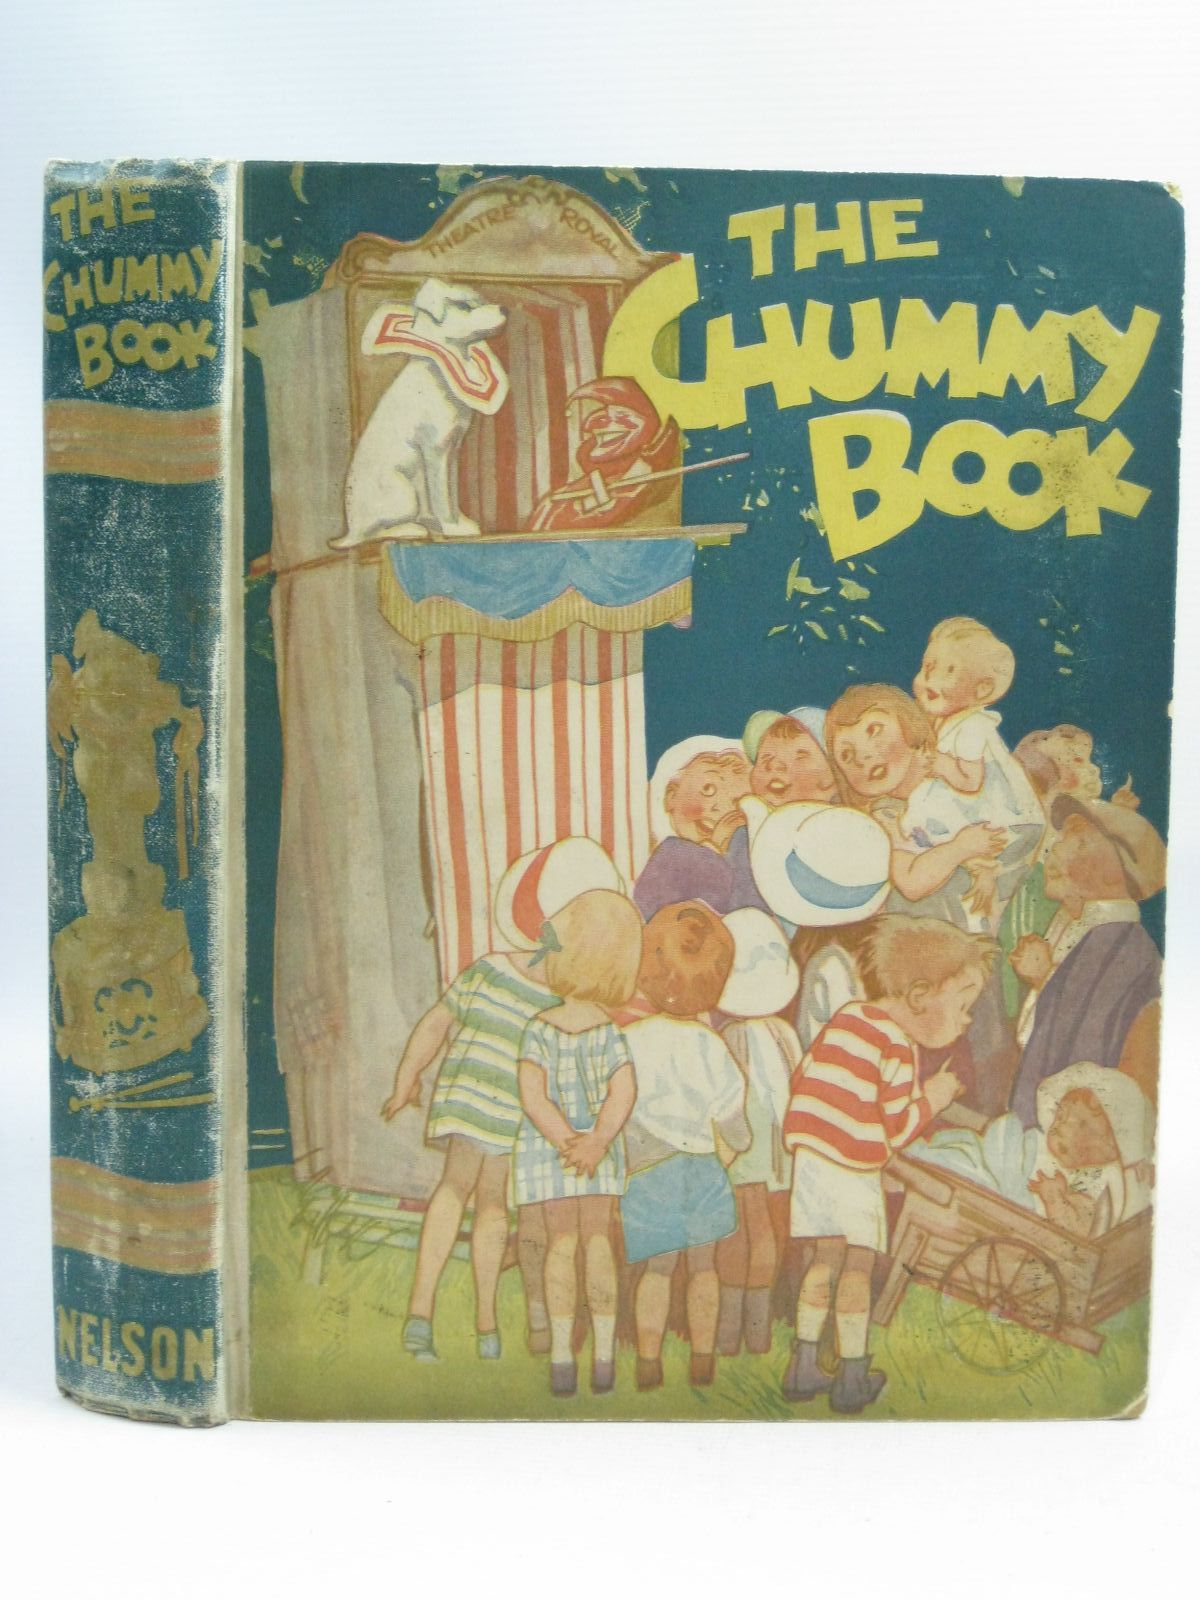 Photo of THE CHUMMY BOOK - THIRTEENTH YEAR written by Chisholm, Edwin<br />Russell, Dorothy<br />Herbertson, Agnes Grozier<br />Hart, Frank<br />Mercer, Joyce<br />et al, illustrated by Wood, Lawson<br />Preston, Chloe<br />Studdy, G.E.<br />Woolley, Harry<br />Hart, Frank<br />et al., published by Thomas Nelson and Sons Ltd. (STOCK CODE: 1505441)  for sale by Stella & Rose's Books